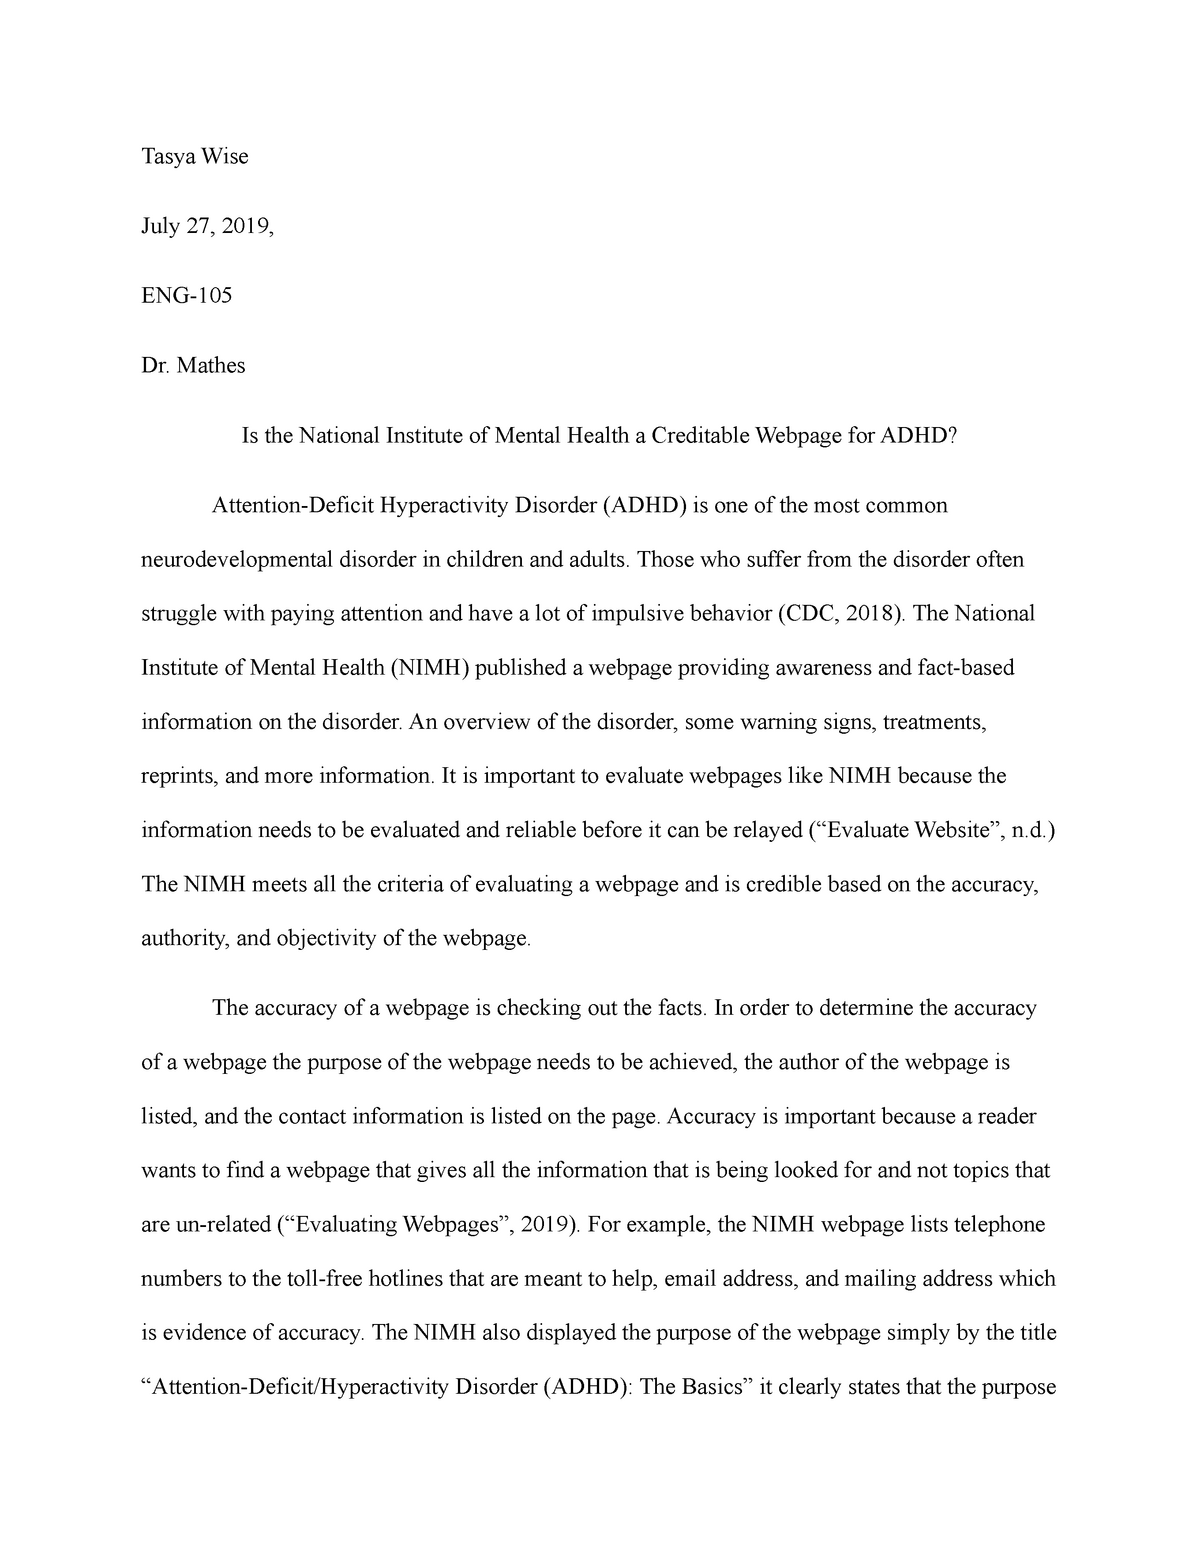 Evaluating a website essay sample cover letter activities director